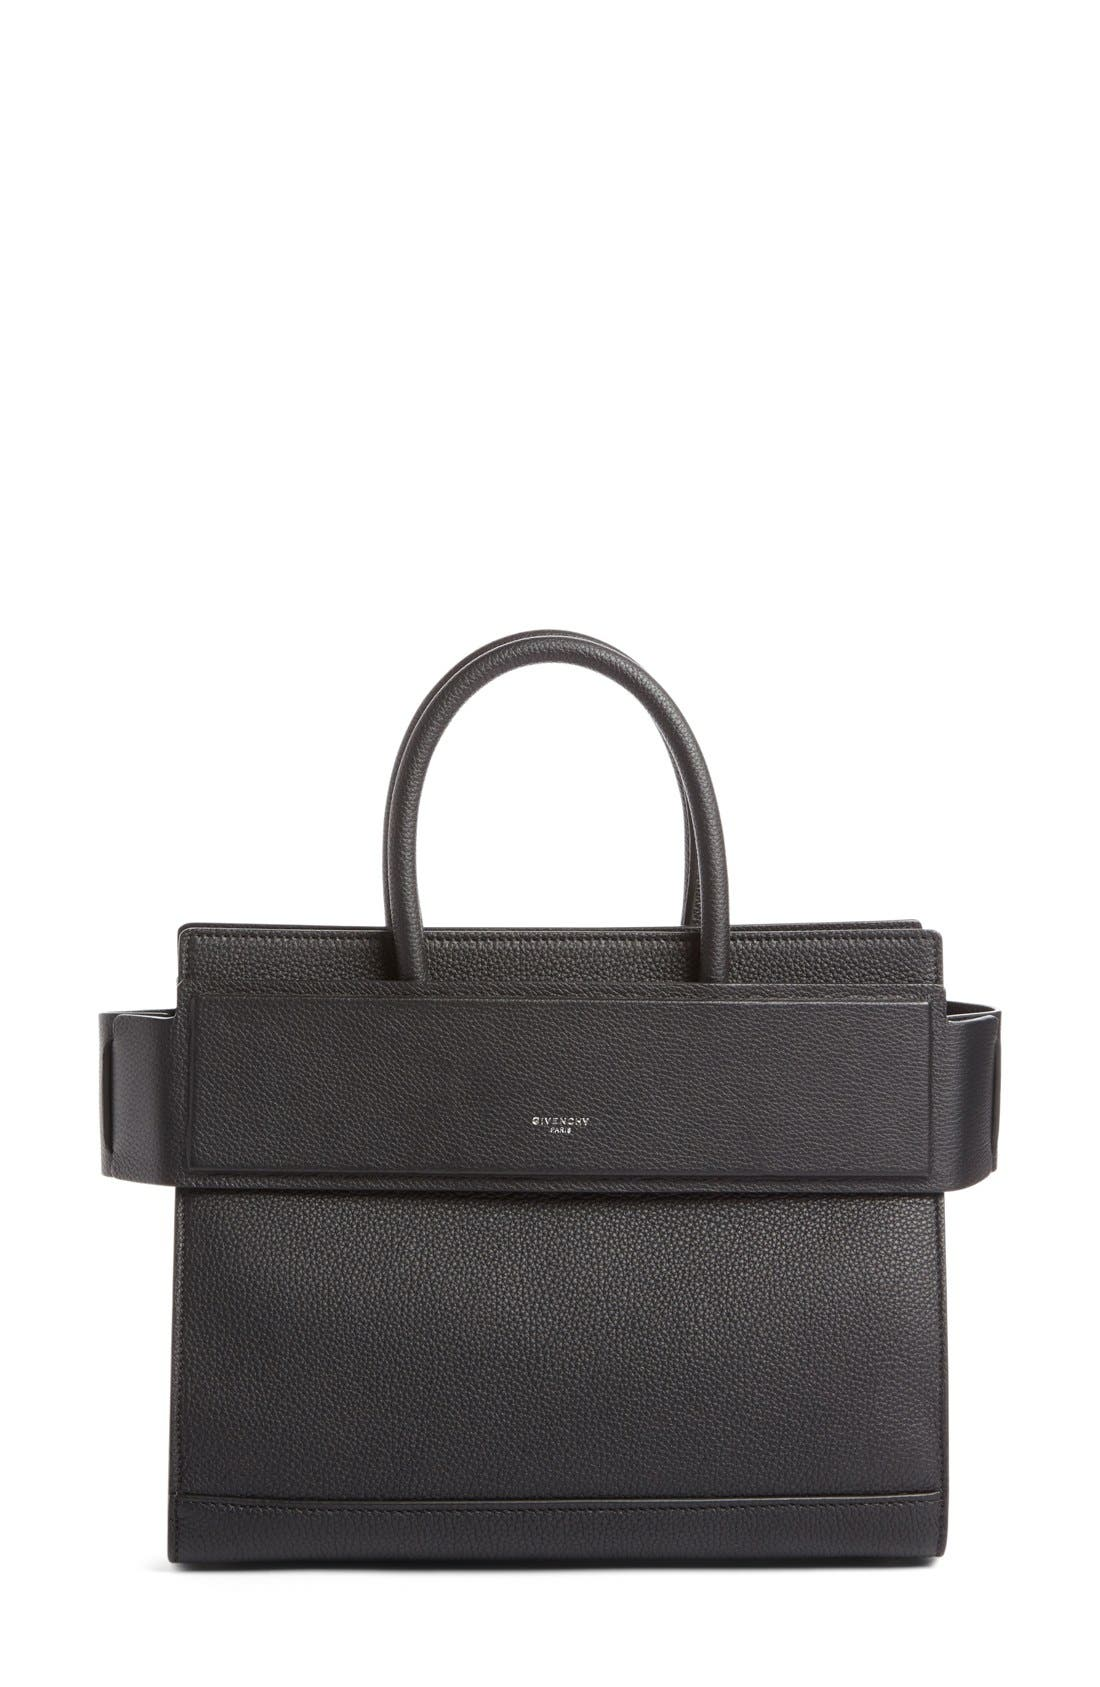 Small Horizon Grained Calfskin Leather Tote,                             Main thumbnail 1, color,                             BLACK